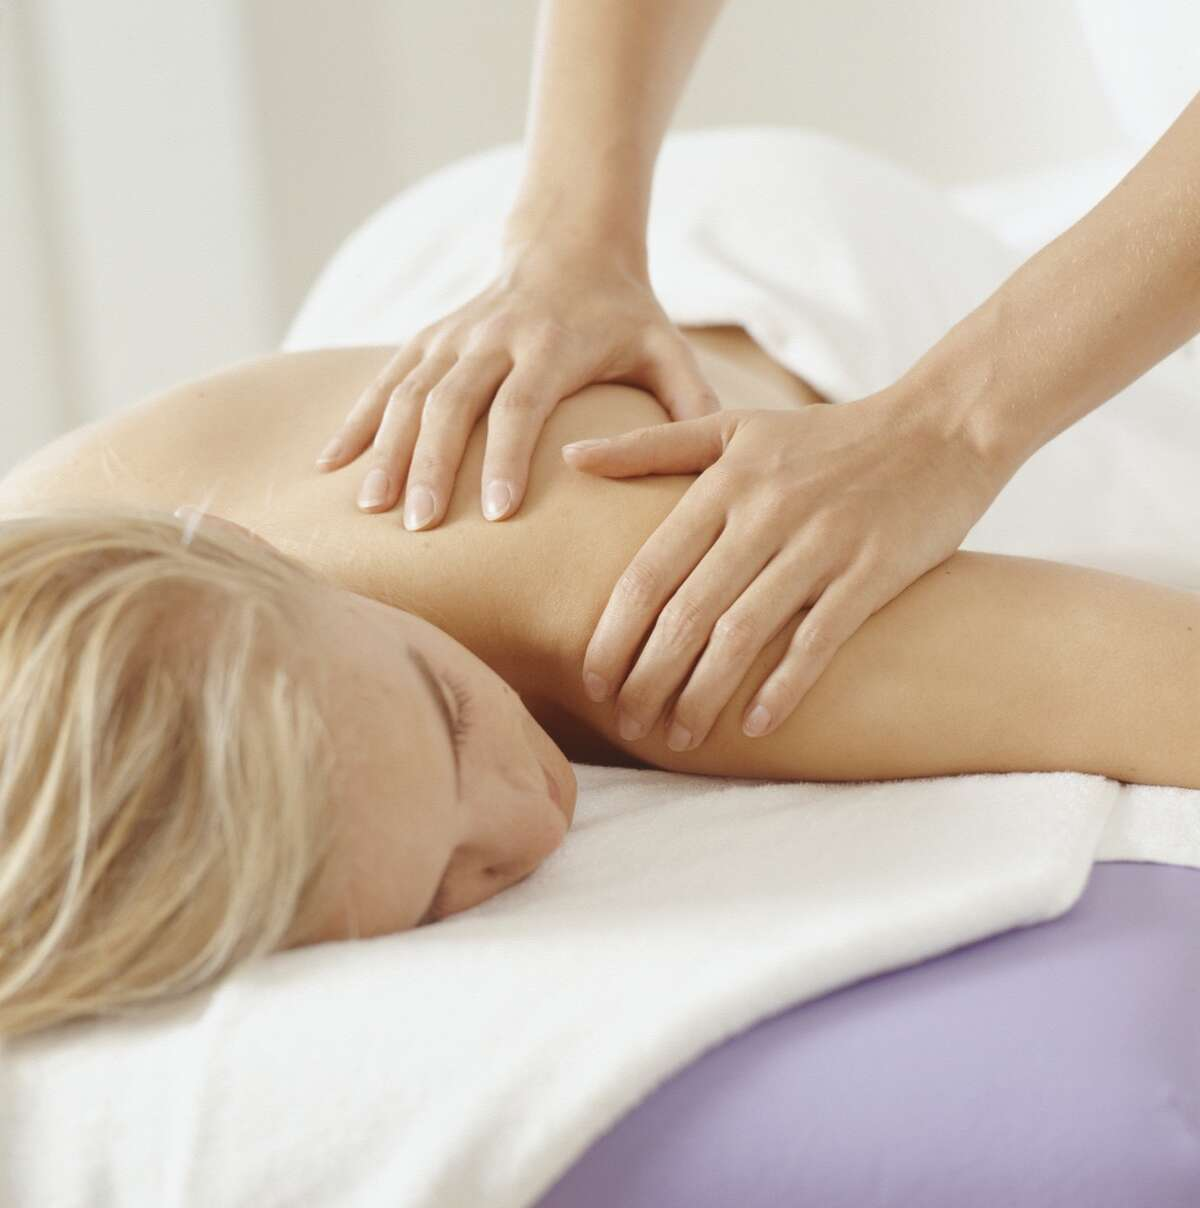 9. Massage therapistMedian salary: $36,557U.S. job listings: 36,500